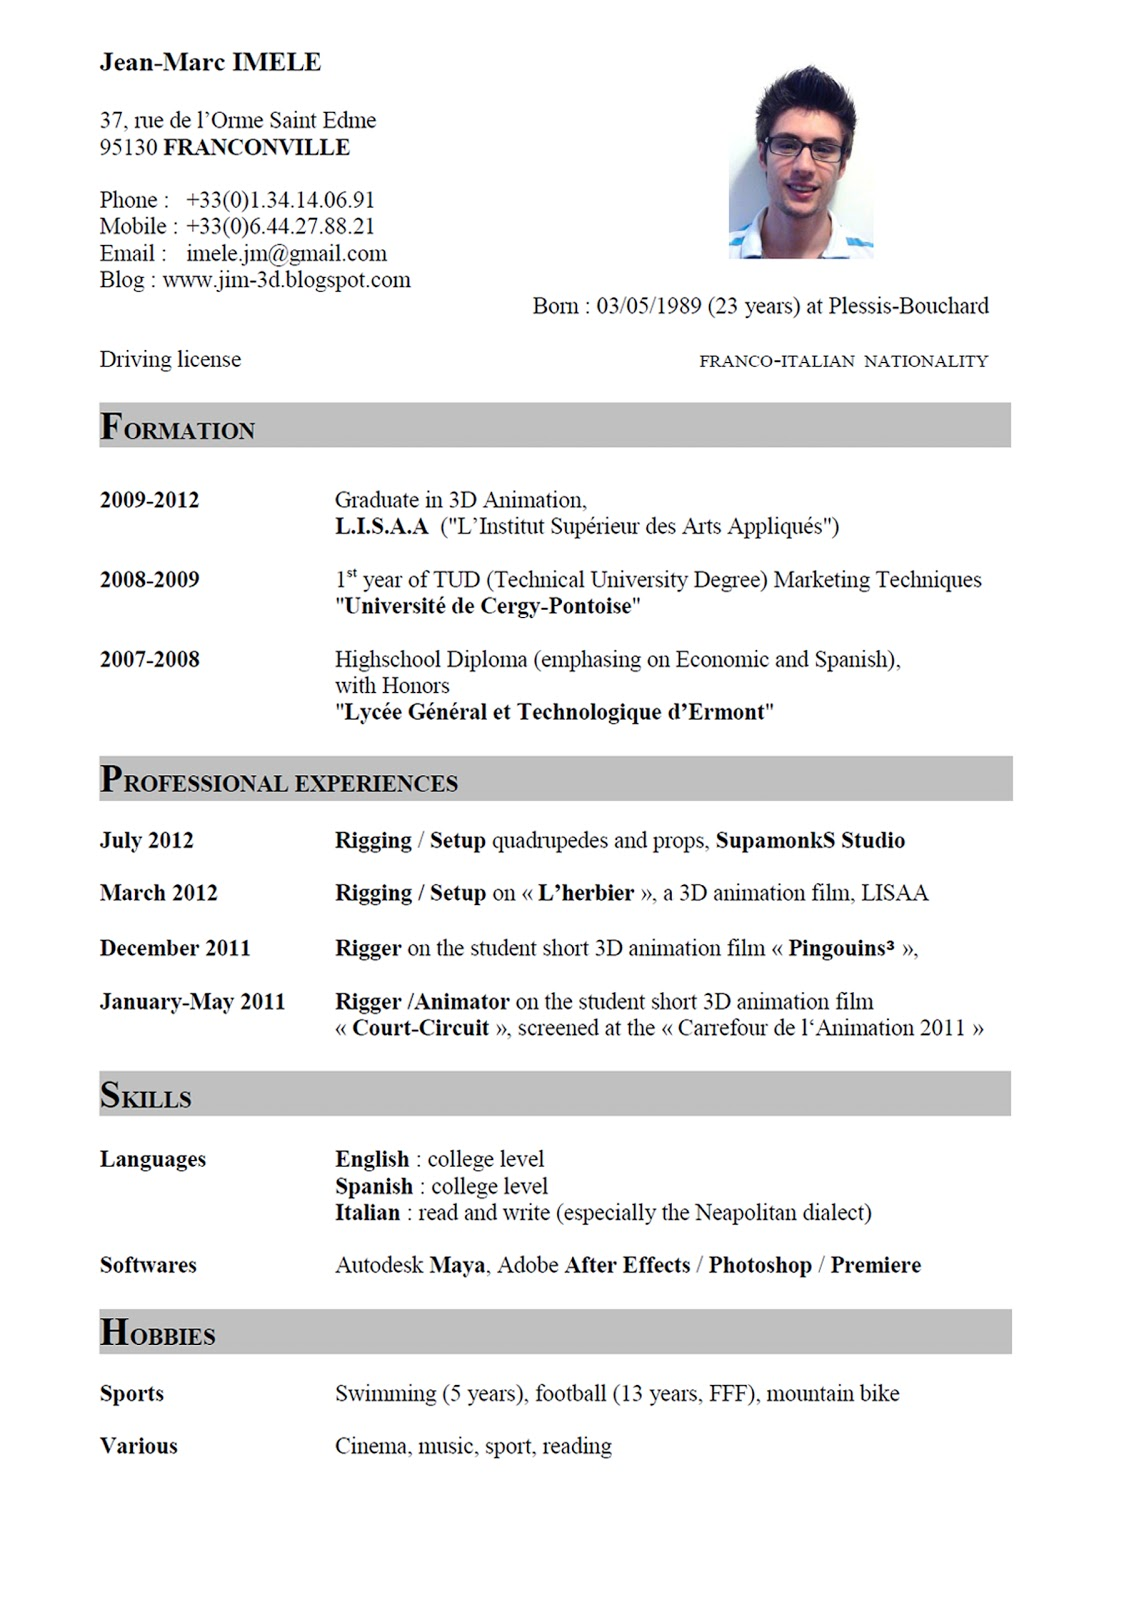 Praxis 1 writing sample essay the ring of fire resume examples resume examples job cover letter how write great resume objective amro it systeme gmbh cv europass yelopaper